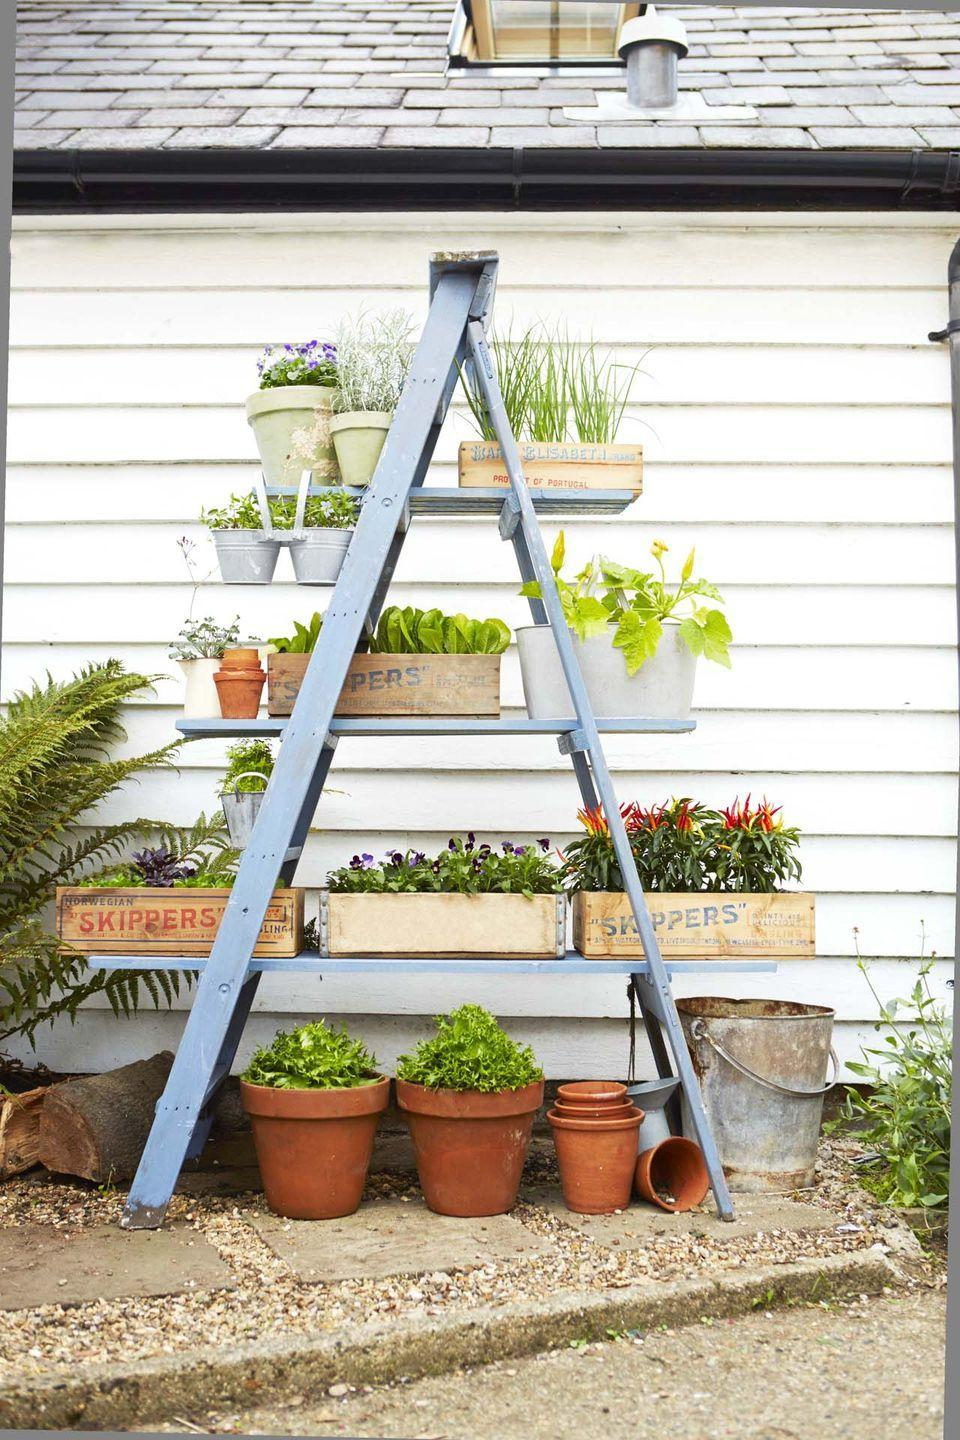 """<p>Turn a wooden ladder into a space-saving stand for flowers, veggies, and herbs with just a few boards and a coat of paint.</p><p><a href=""""https://www.goodhousekeeping.com/home/gardening/advice/g76/diy-ladder-planter/"""" rel=""""nofollow noopener"""" target=""""_blank"""" data-ylk=""""slk:Get the tutorial »"""" class=""""link rapid-noclick-resp""""><em>Get the tutorial »</em></a><br></p>"""